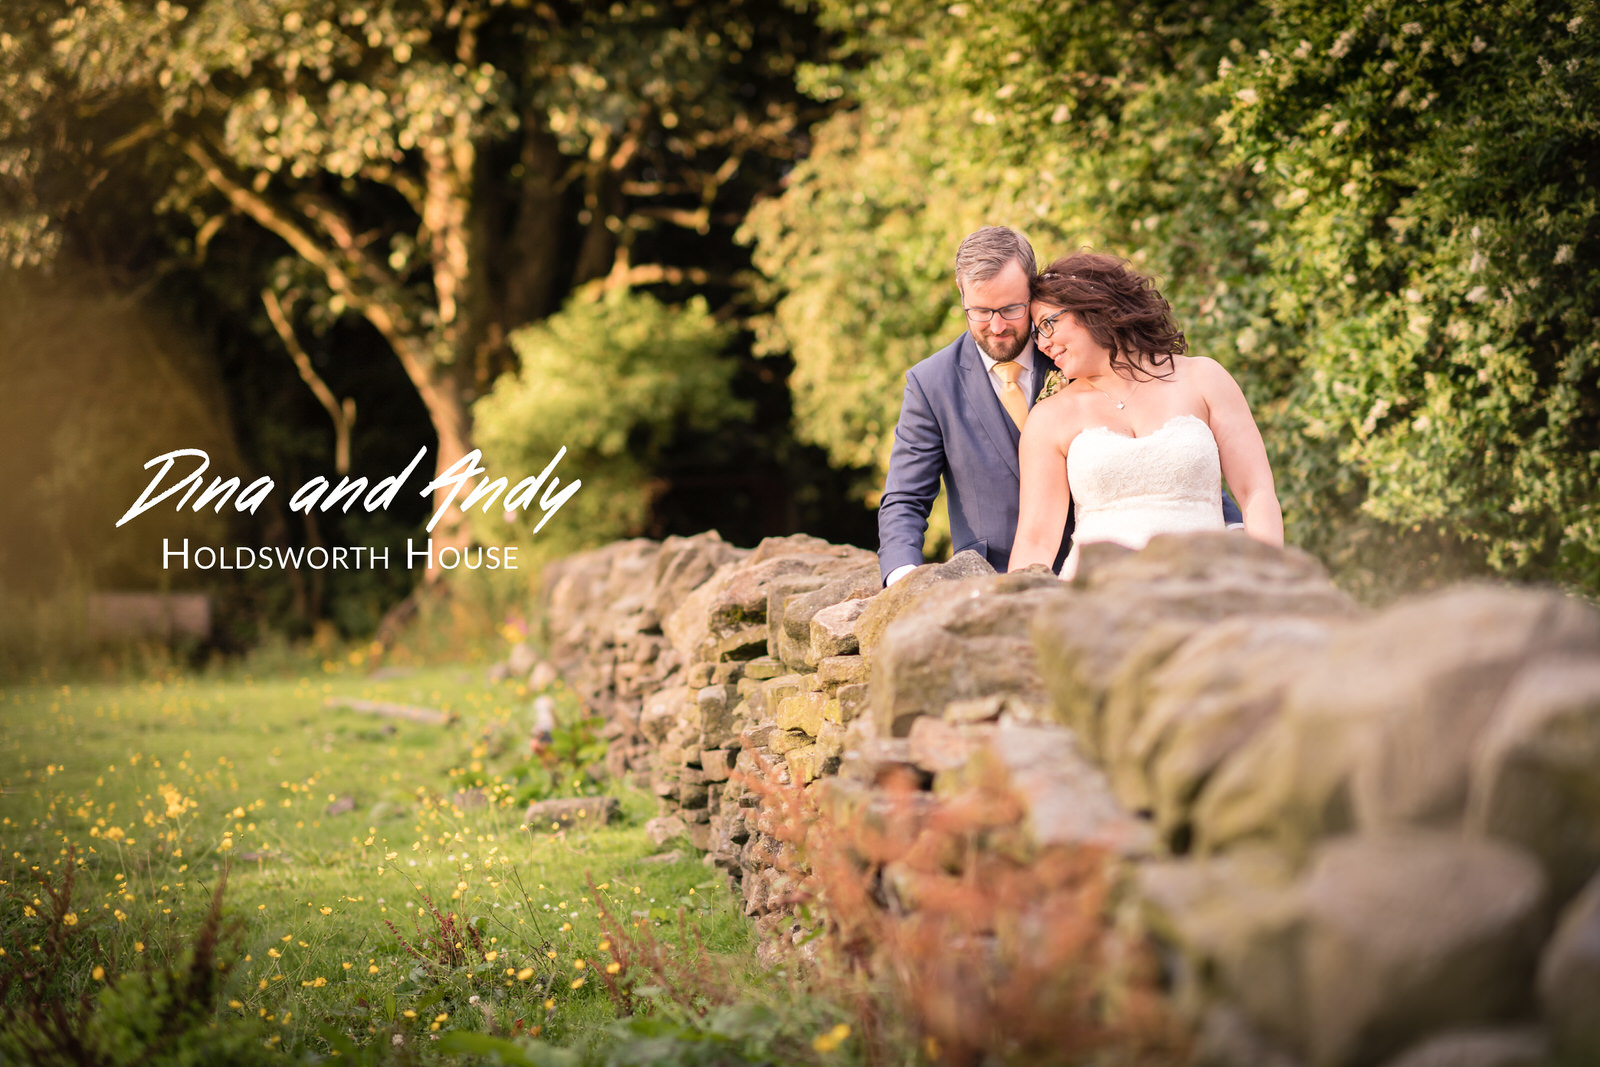 Dina and Andy's Wedding - Holdsworth House